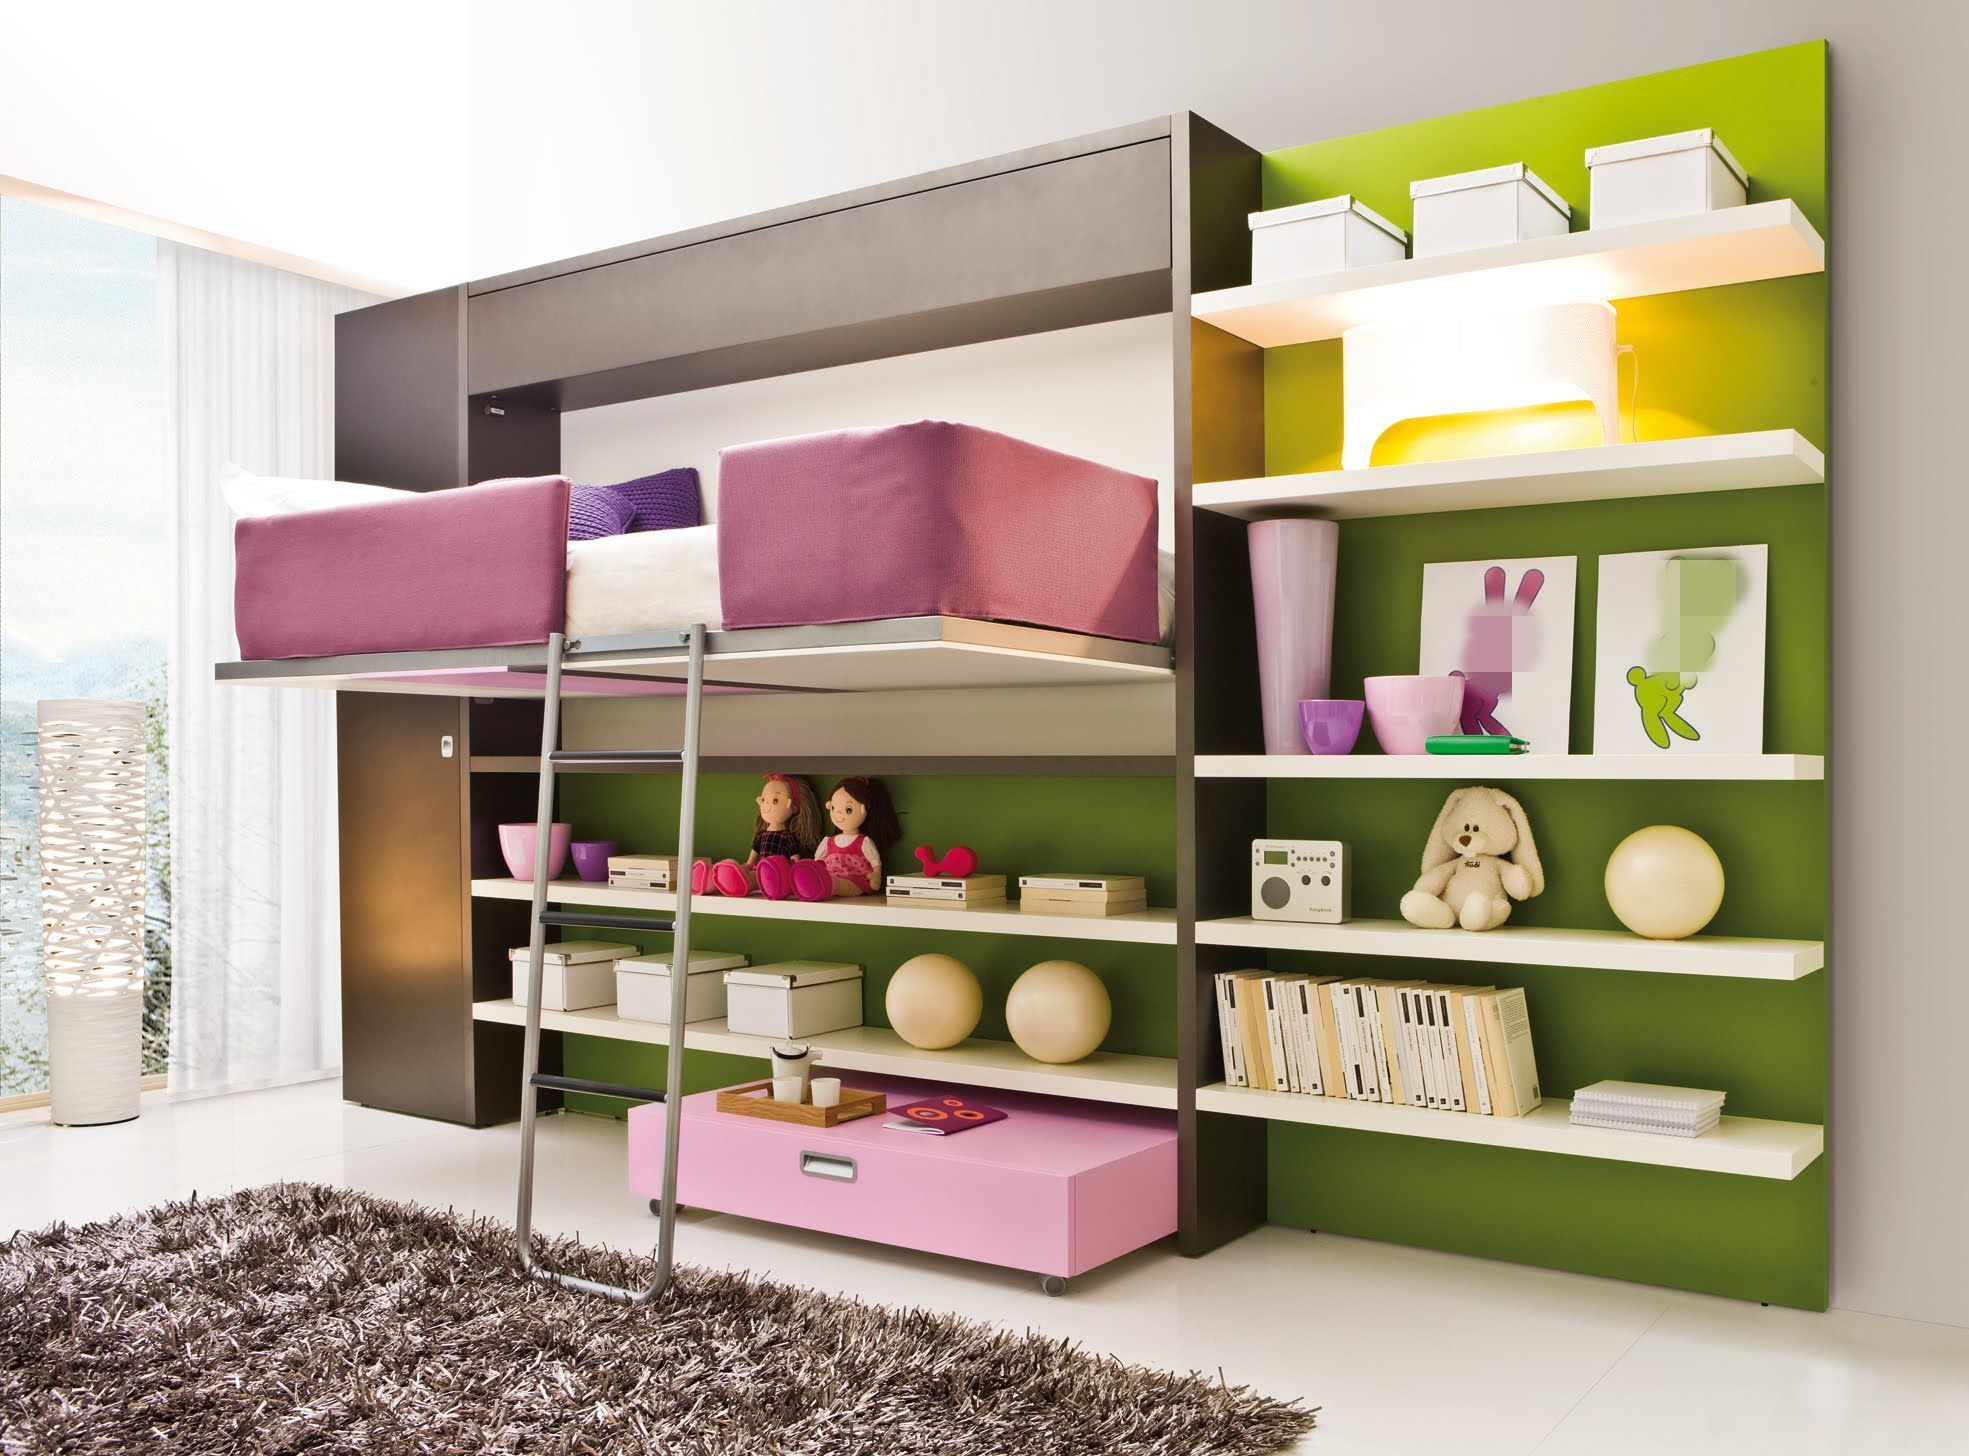 Amazing bedroom ideas for teenage girls with white wooden bed simple images